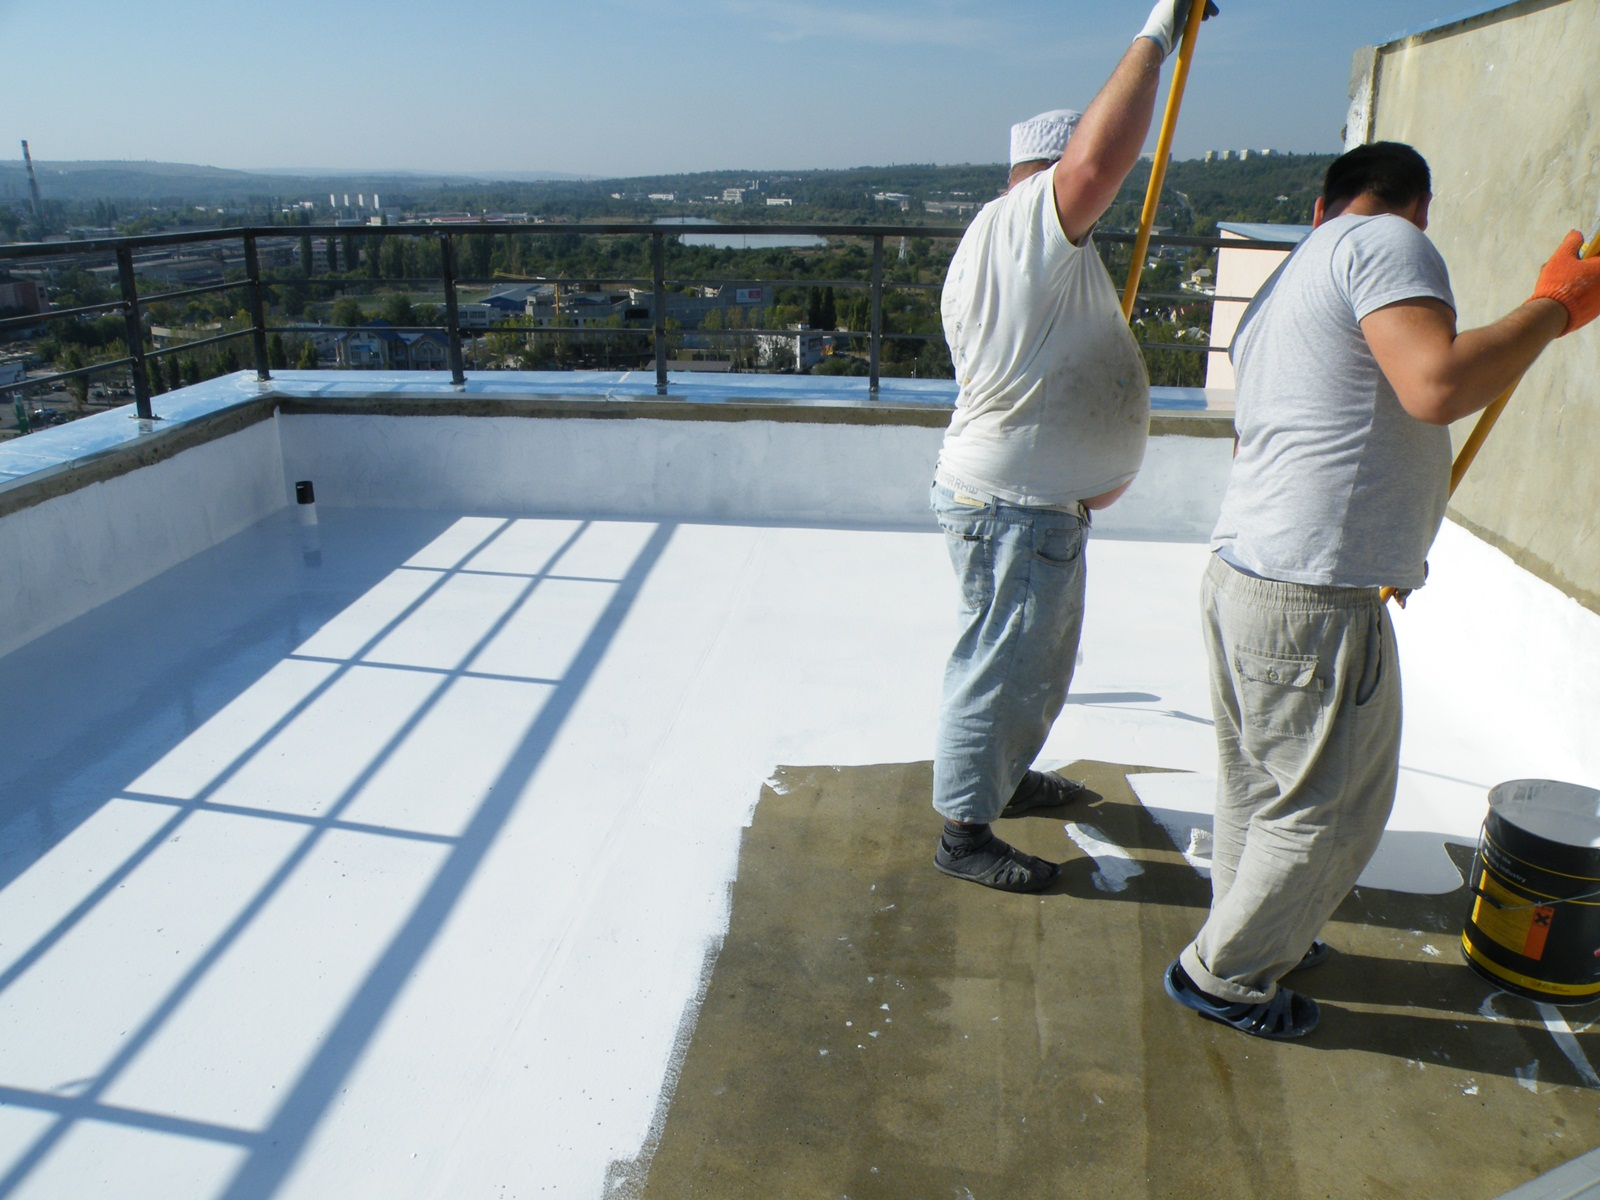 Gallery Heat Proofing And Waterproofing In Karachi Pakistan